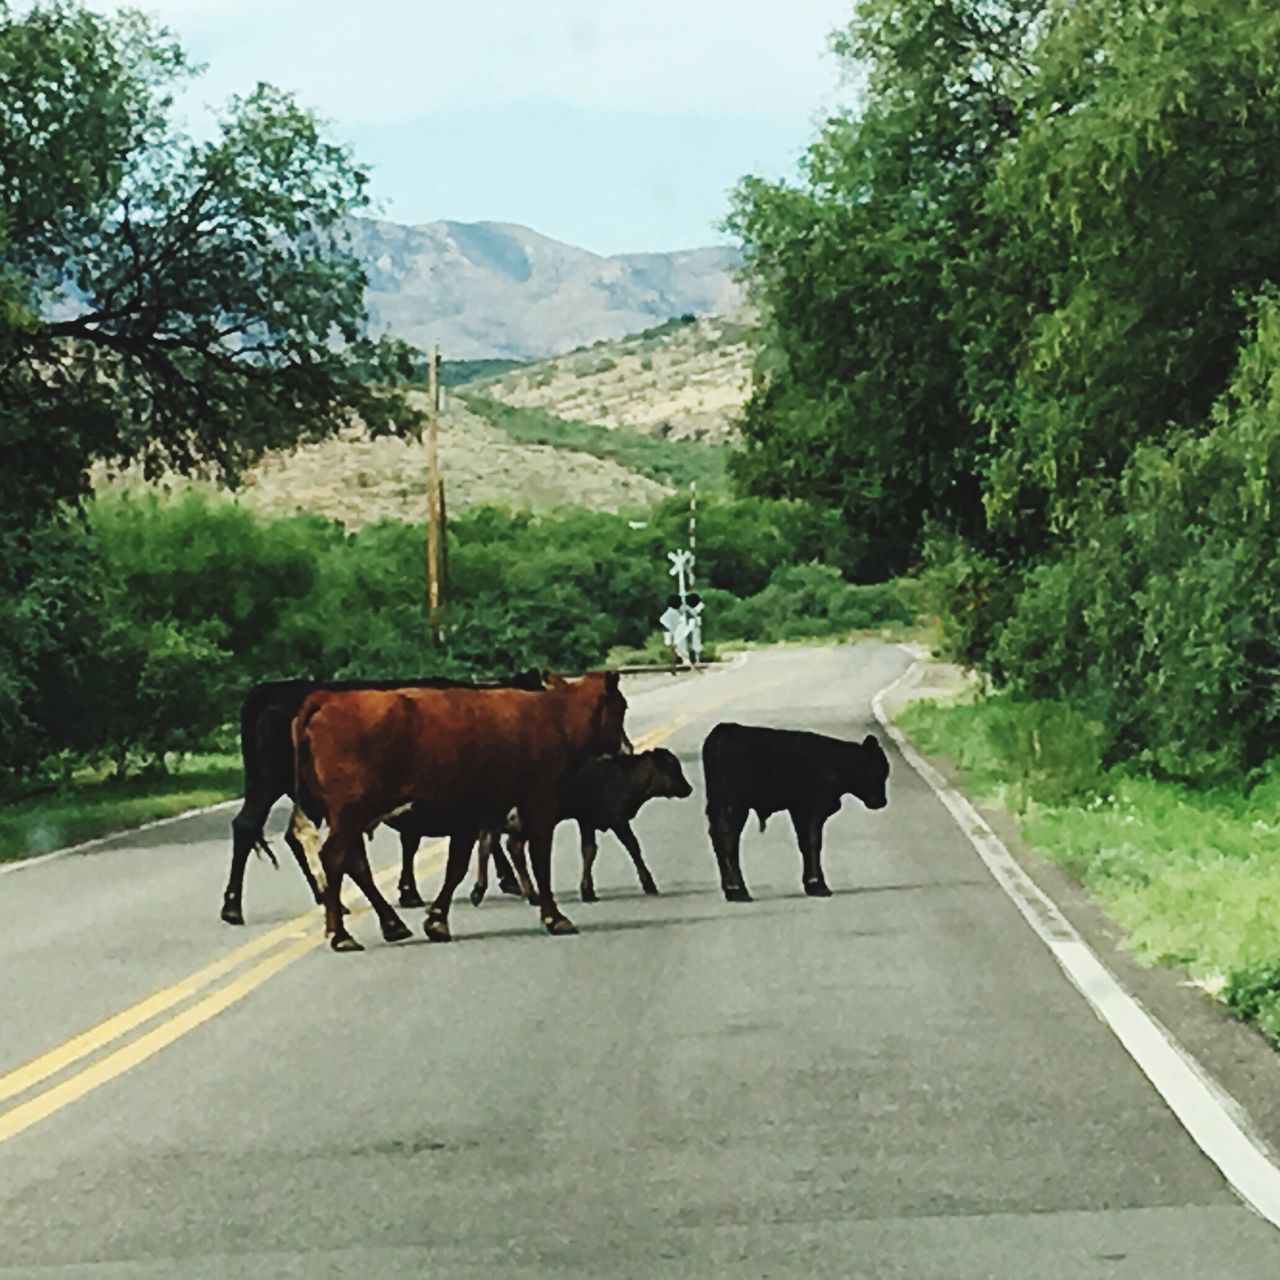 Cows Arizona Wildwest Rio Rico Roads Crossroads Crossing The Street Cows!!! Cowsofinstagram Cows Crossing Traffic Jam Traffic Jam. Patience Traffic Border Life Small Town Small Town USA Traffic Stop